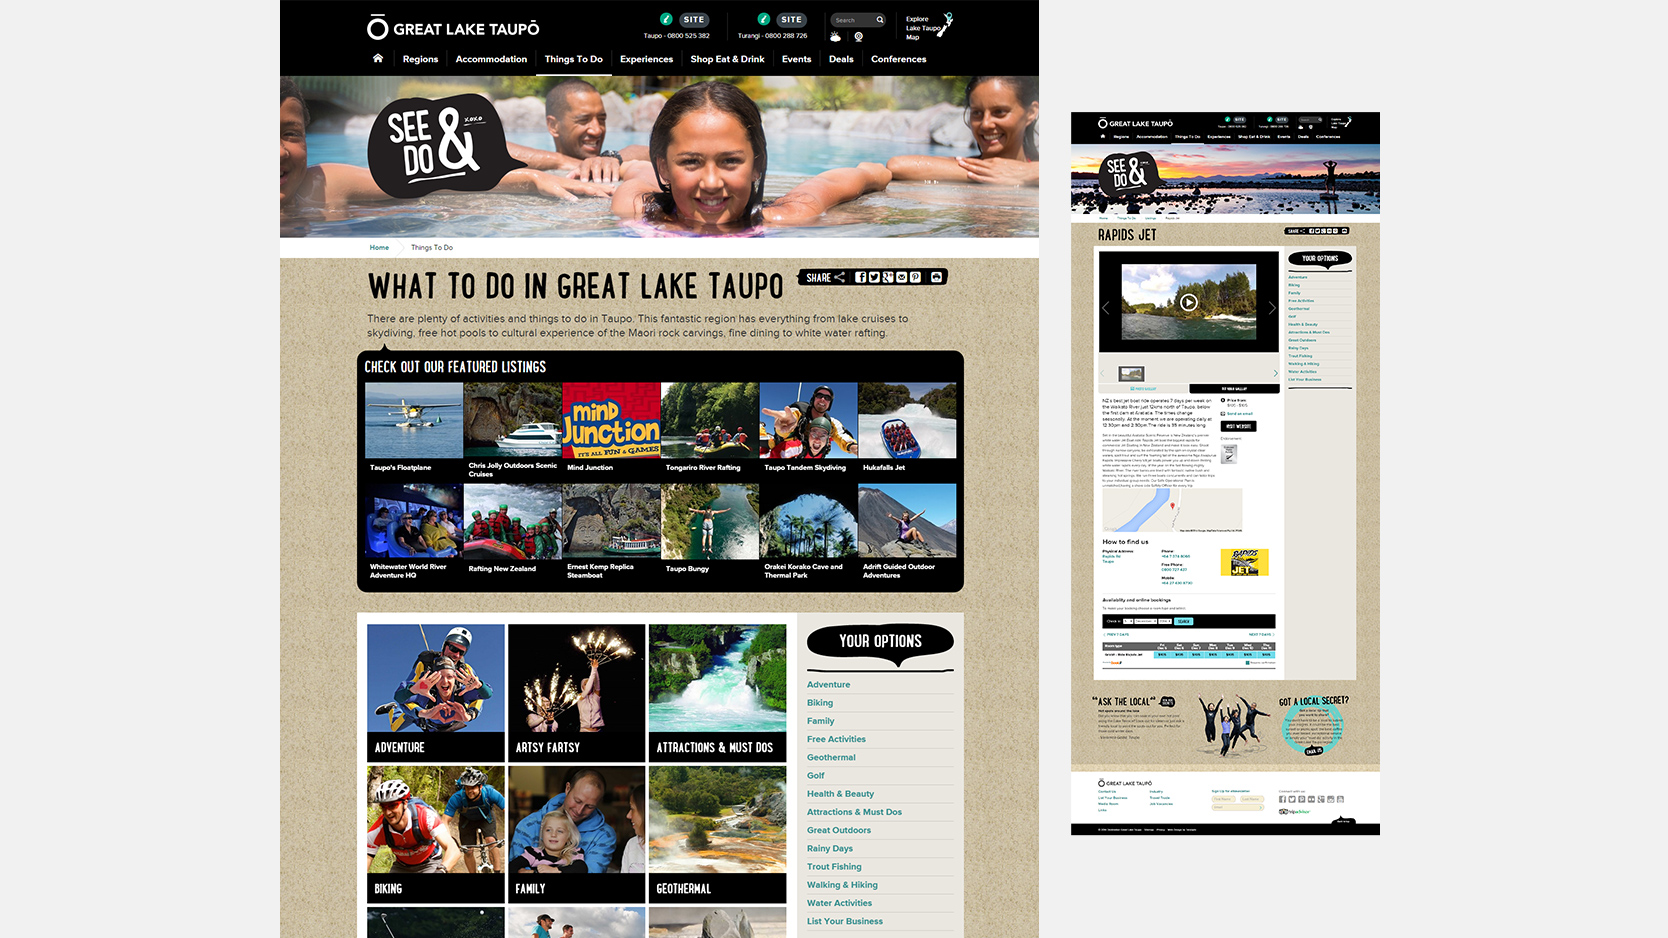 Destination Great Lake Taupo Activities Listing And Activitiy Detail Page.jpg